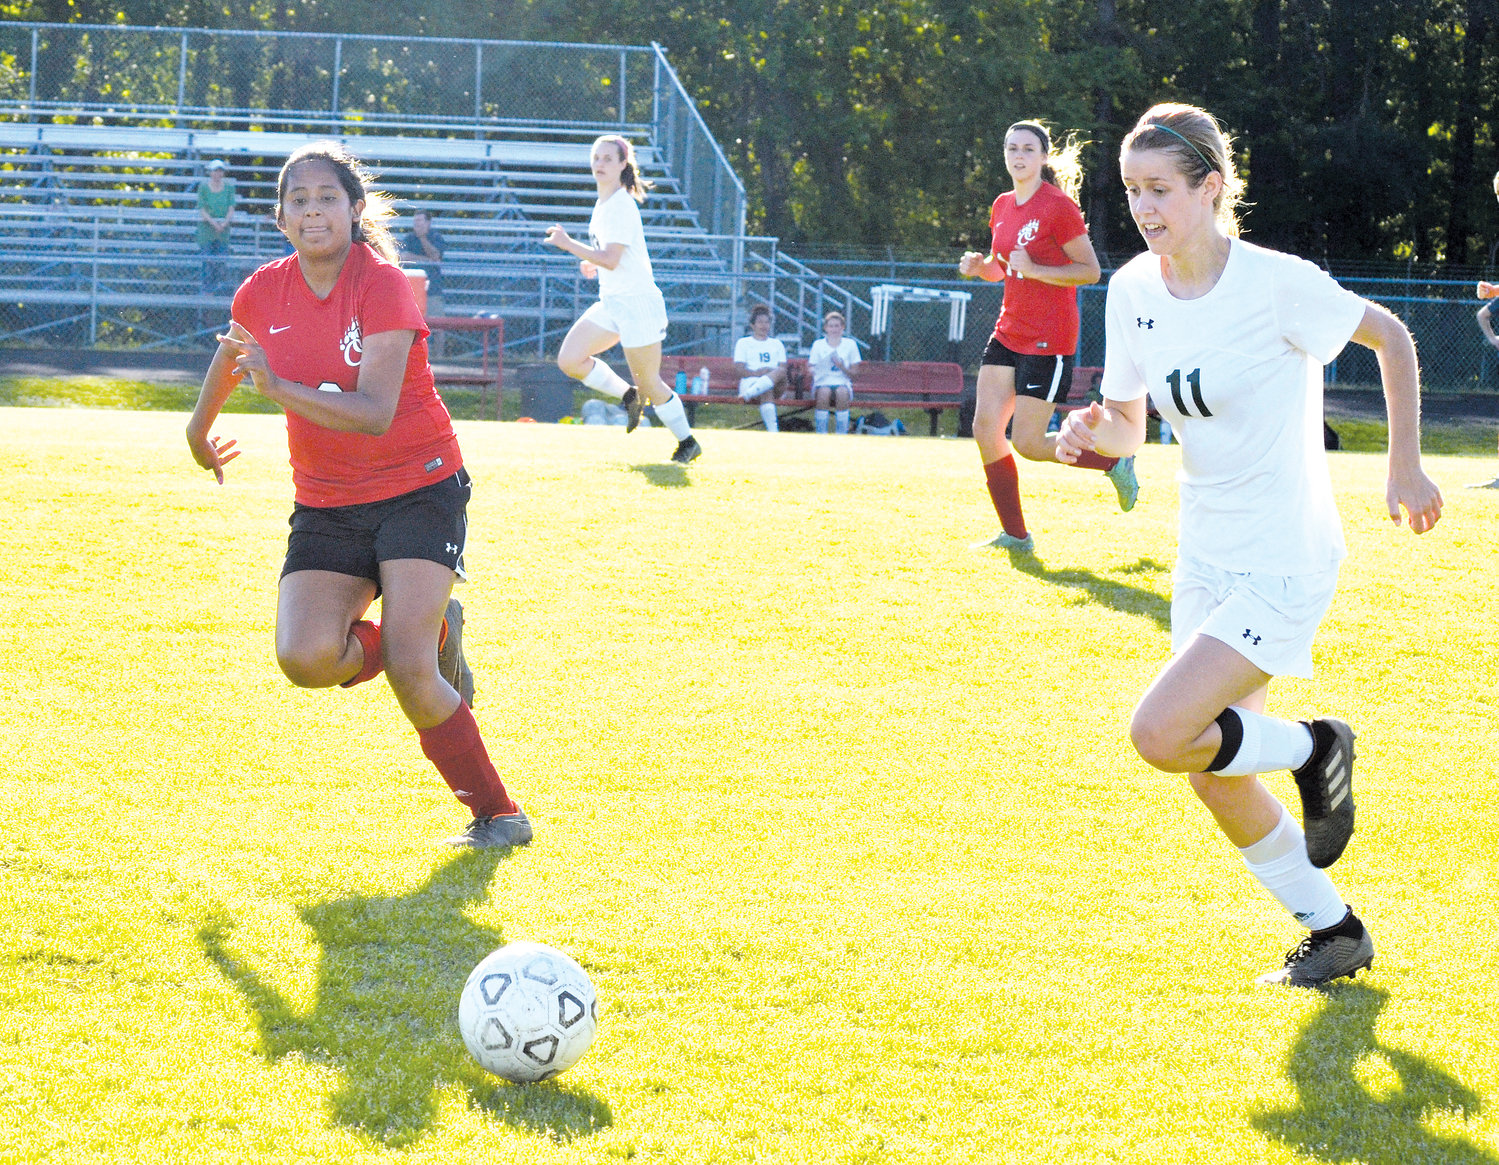 Chatham Central's Reyna Baruch, left, runs to defend the ball against Woods Charter's Eloise Maclean in Wednesday's match at Chatham Central. Woods defeated the home team 9-0.